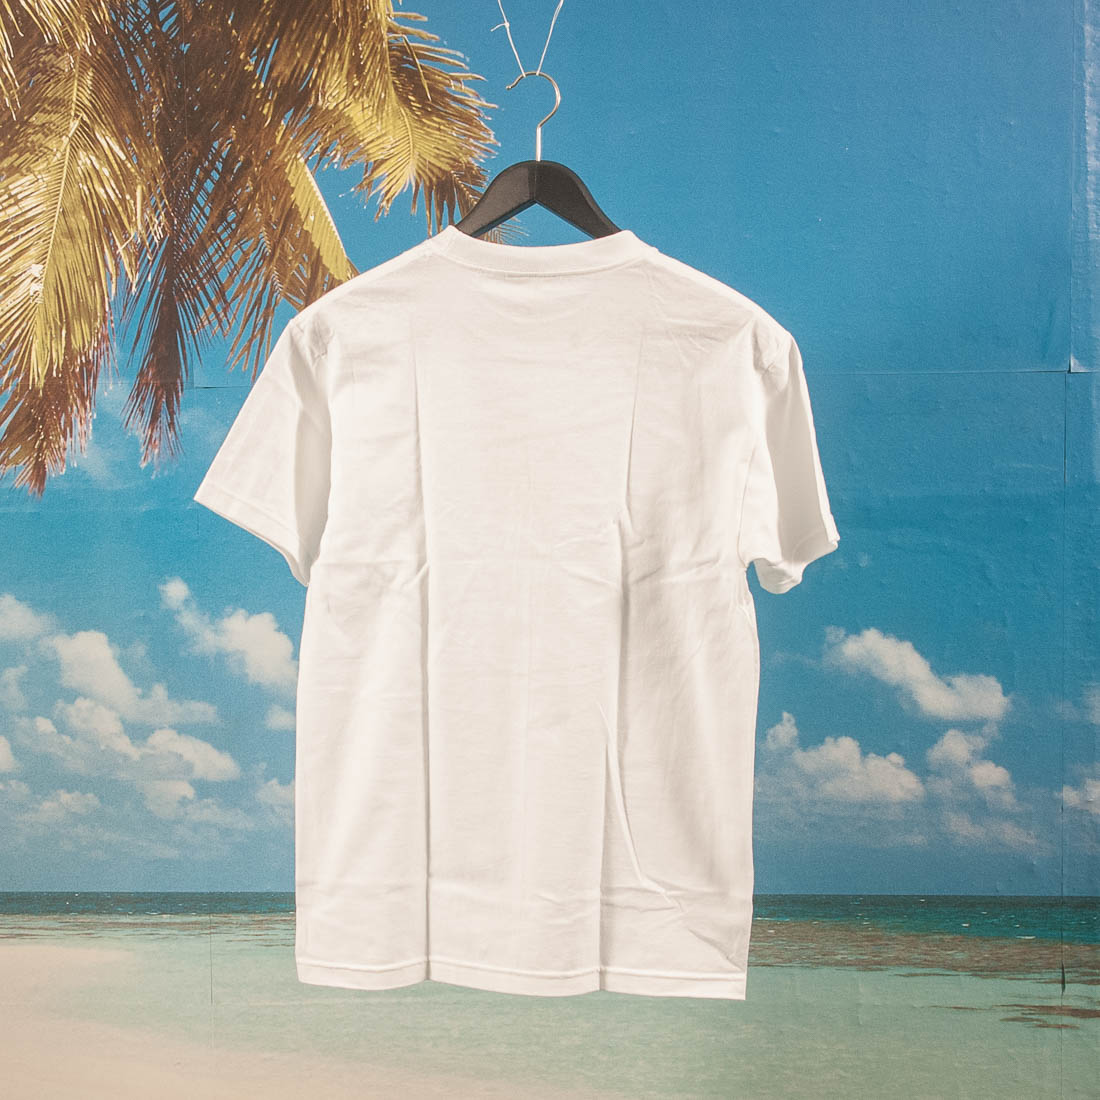 Skateboard Cafe - College T-Shirt - White